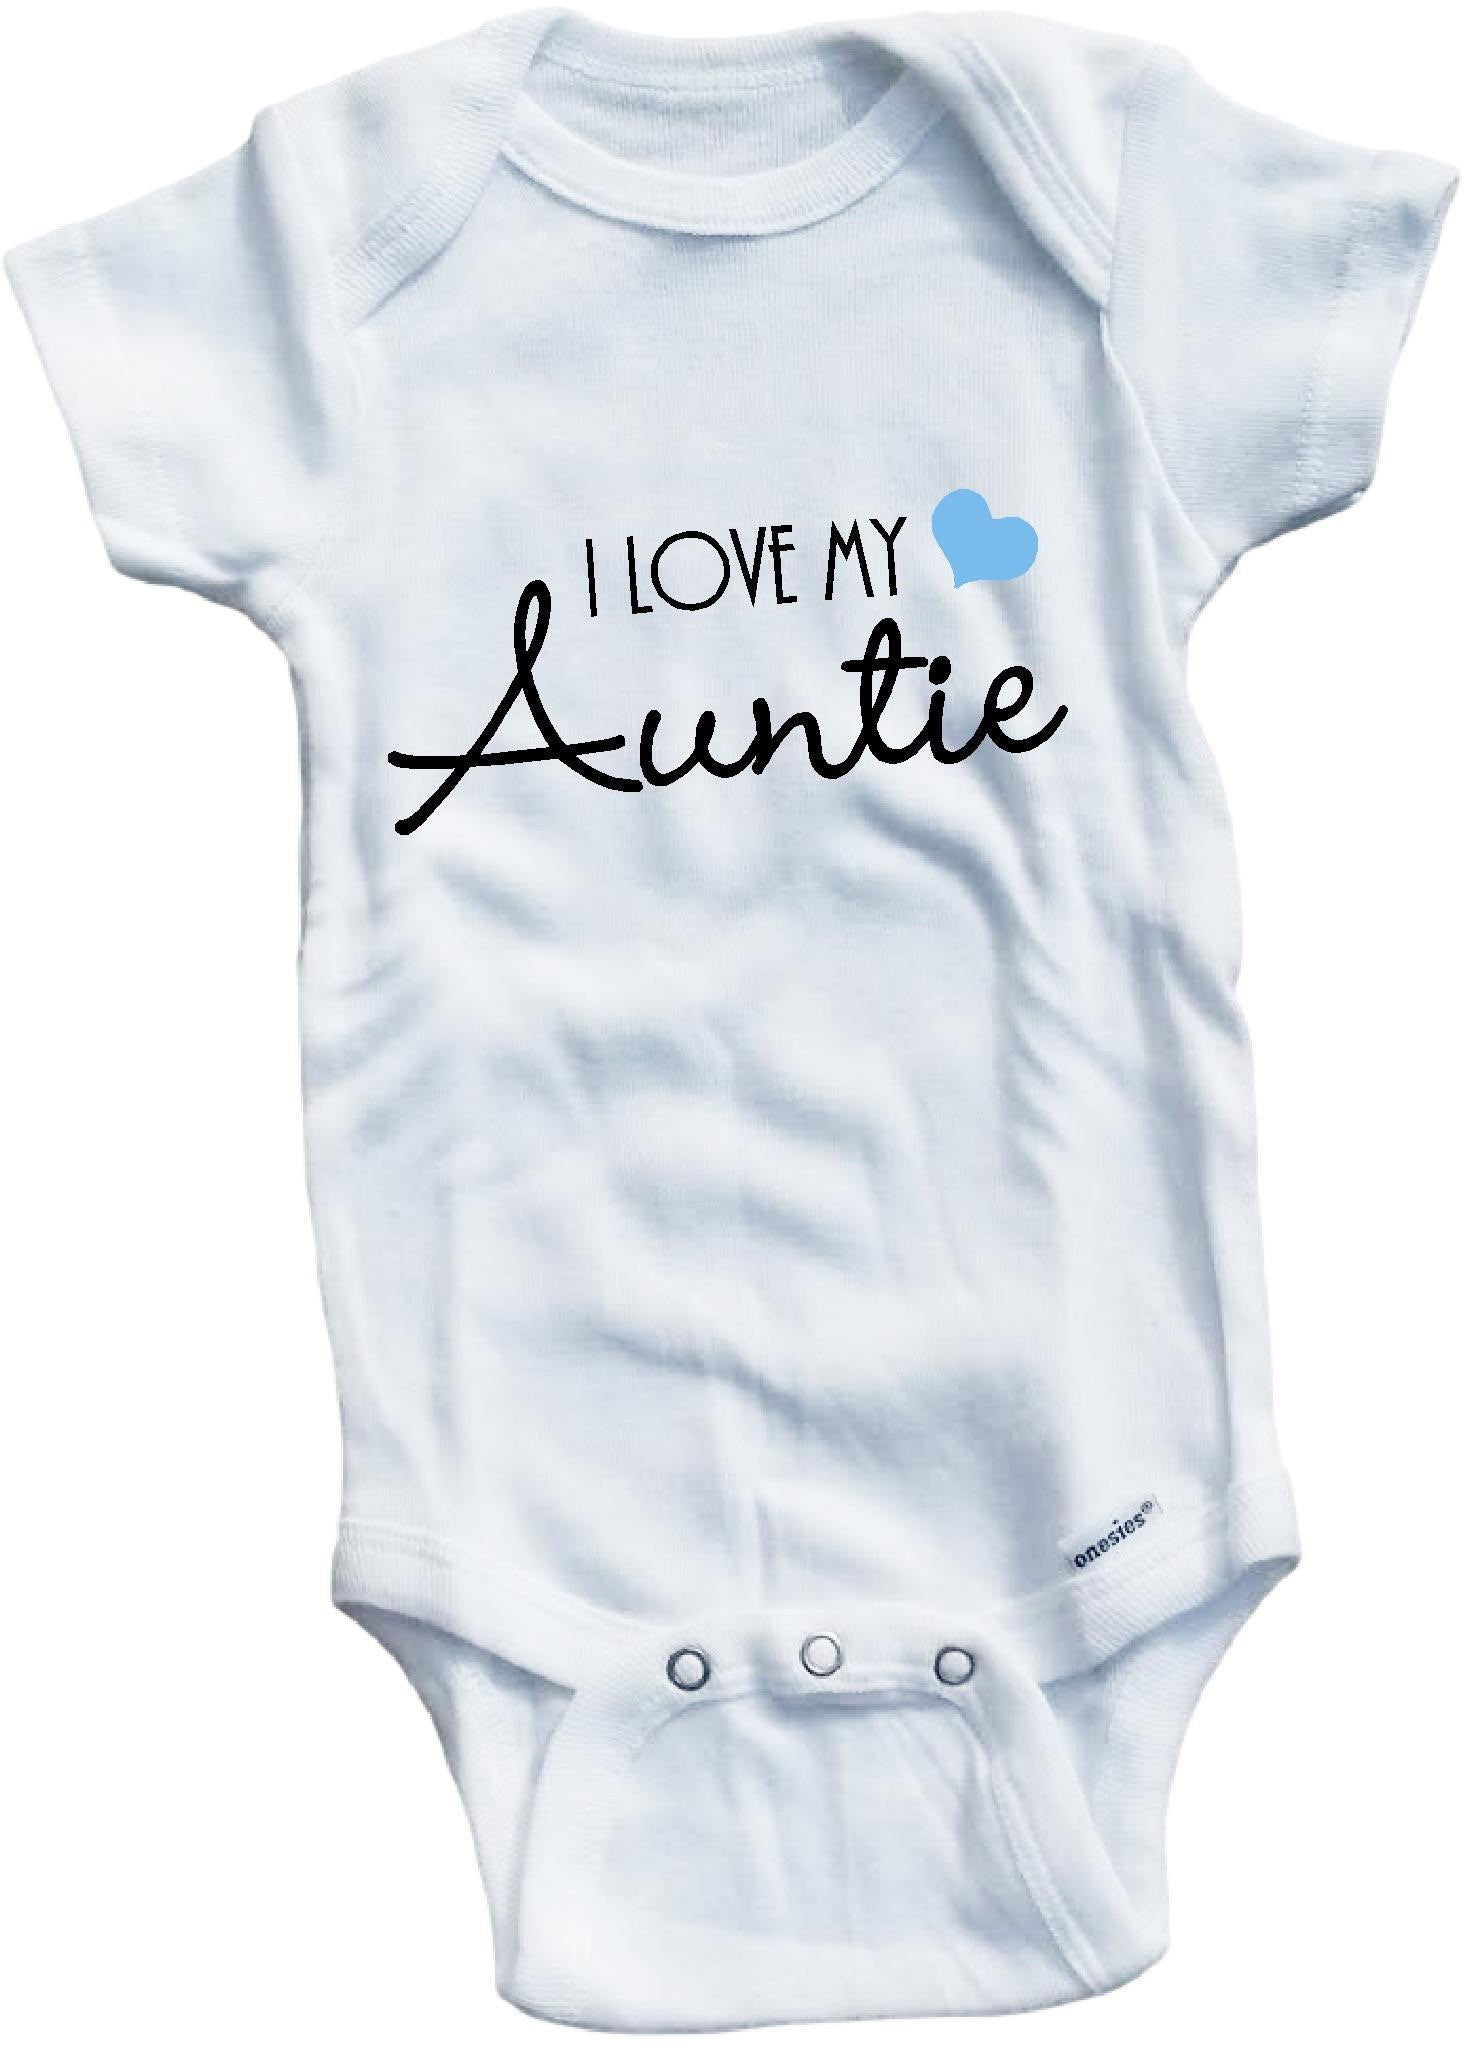 60da42227da4 I love my Auntie cute infant clothing funny baby clothes one piece ...